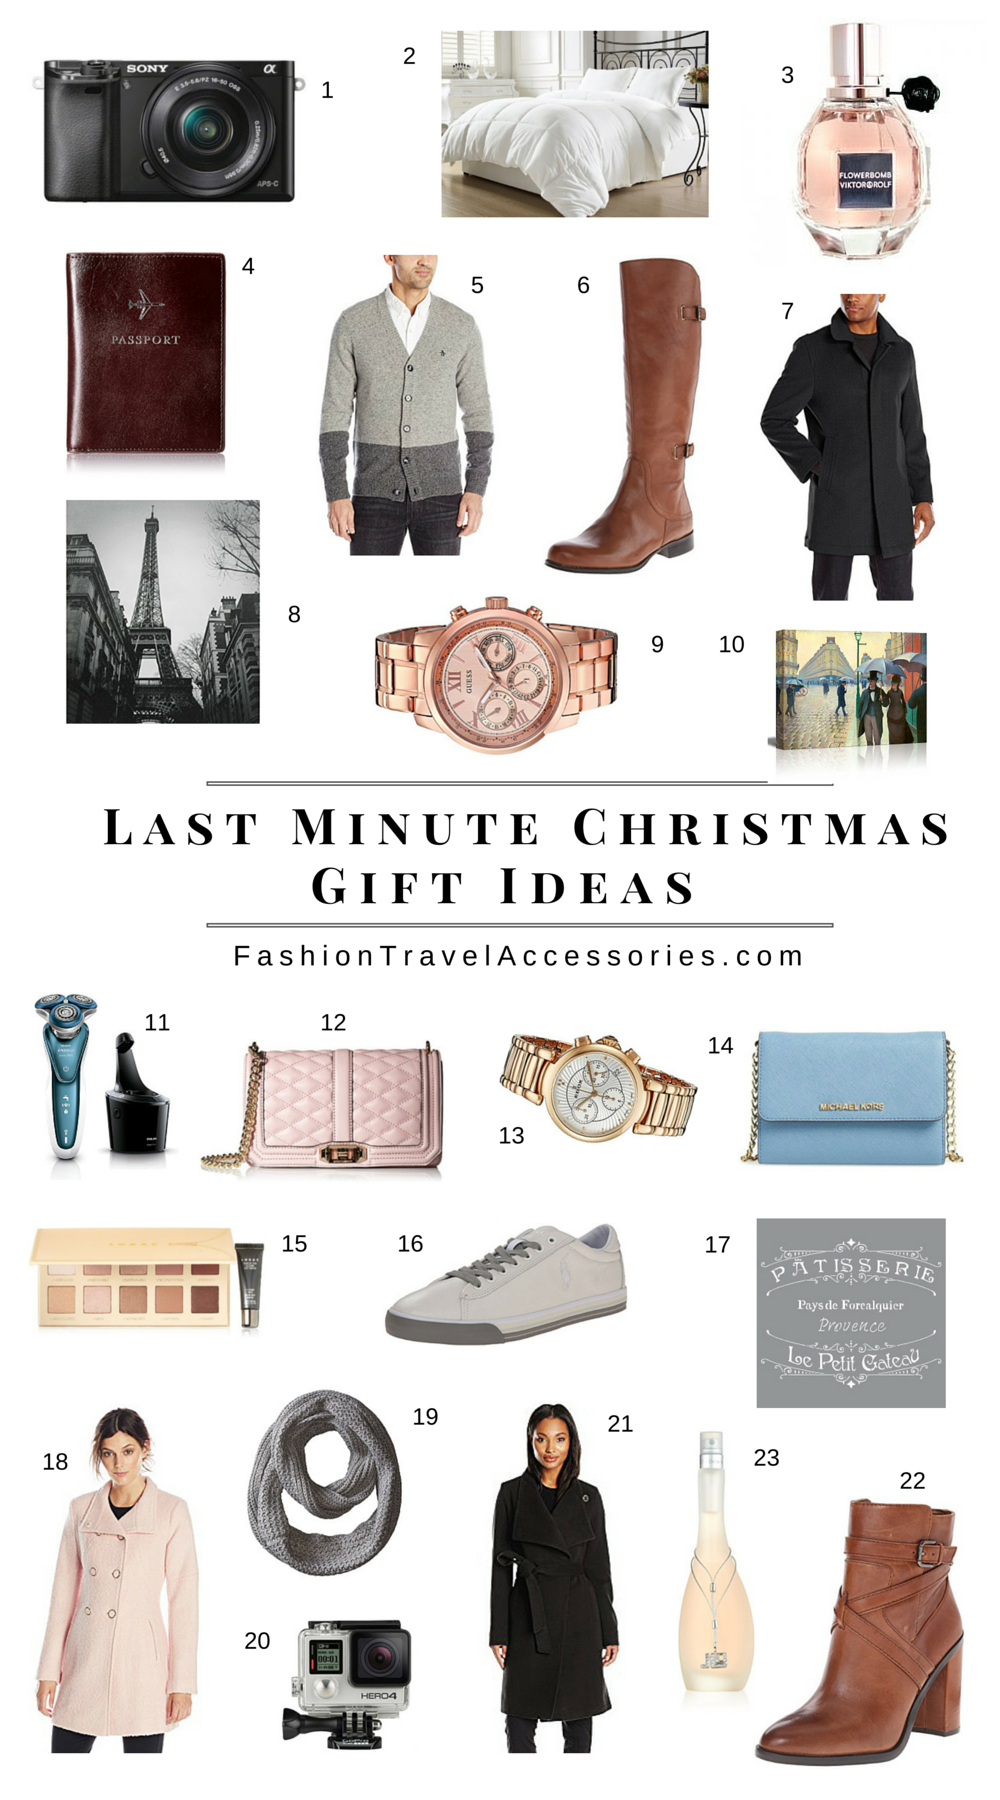 1 Last Minute Christmas Gift Ideas Fashion Travel Accessories